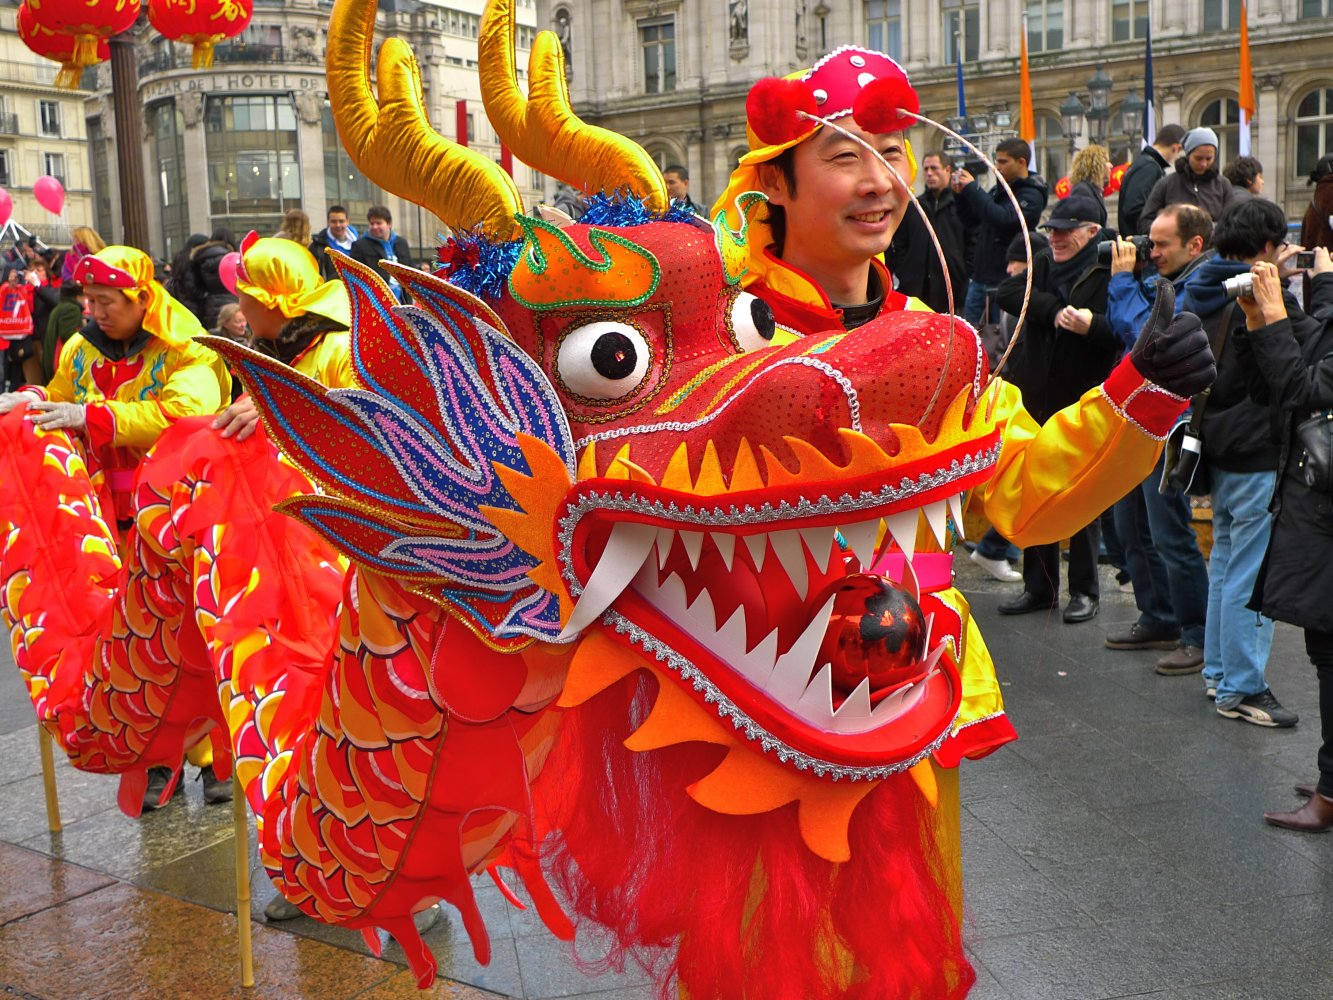 Chinese New Year Google image from https://s-media-cache-ak0.pinimg.com/originals/45/7a/c3/457ac3008f808acc32fec8d09b4ffd3b.jpg